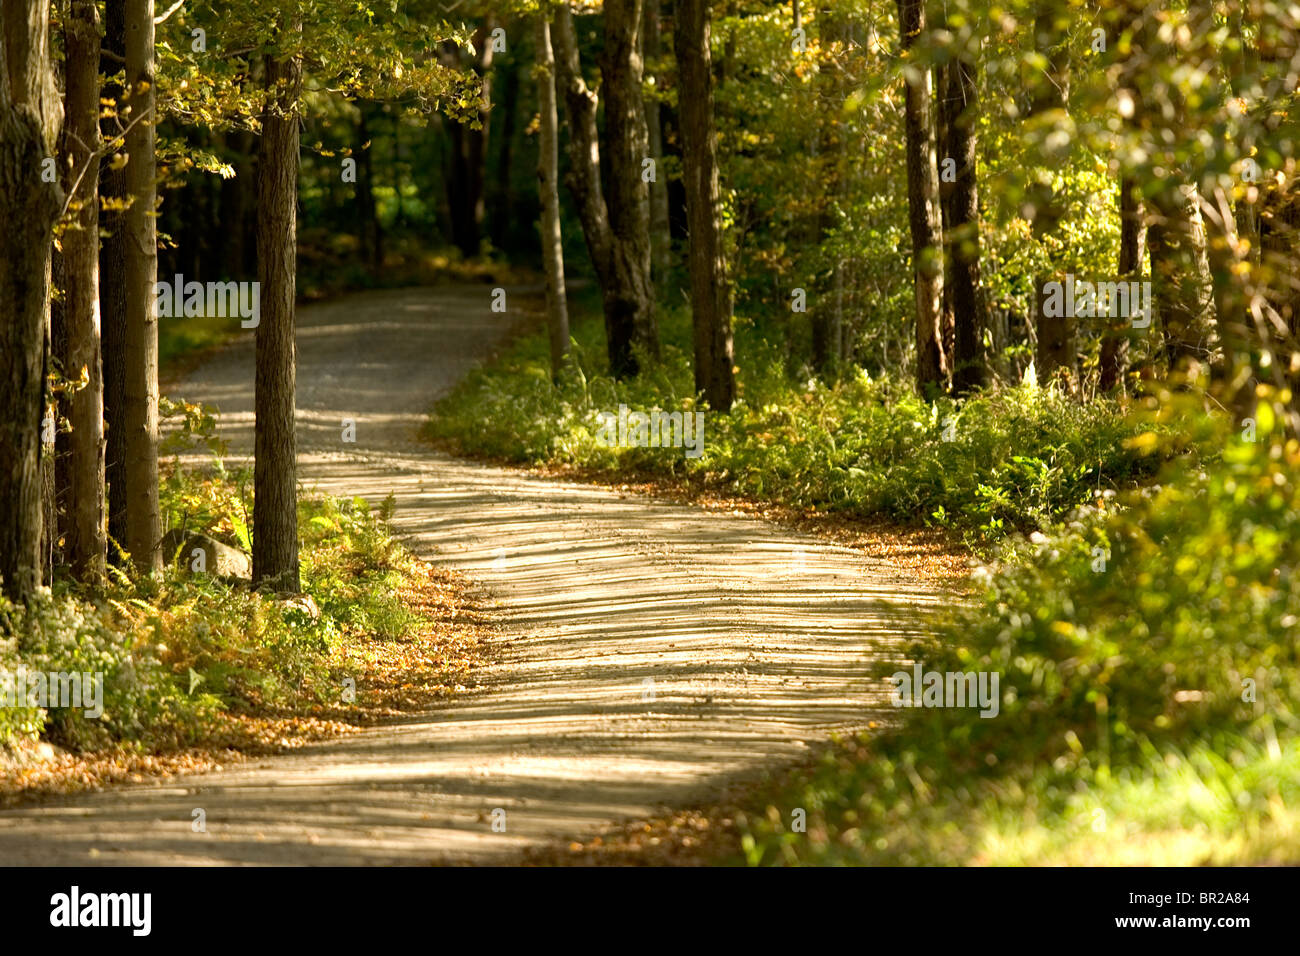 A dirt road winds through woods near Woodstock, Connecticut. - Stock Image